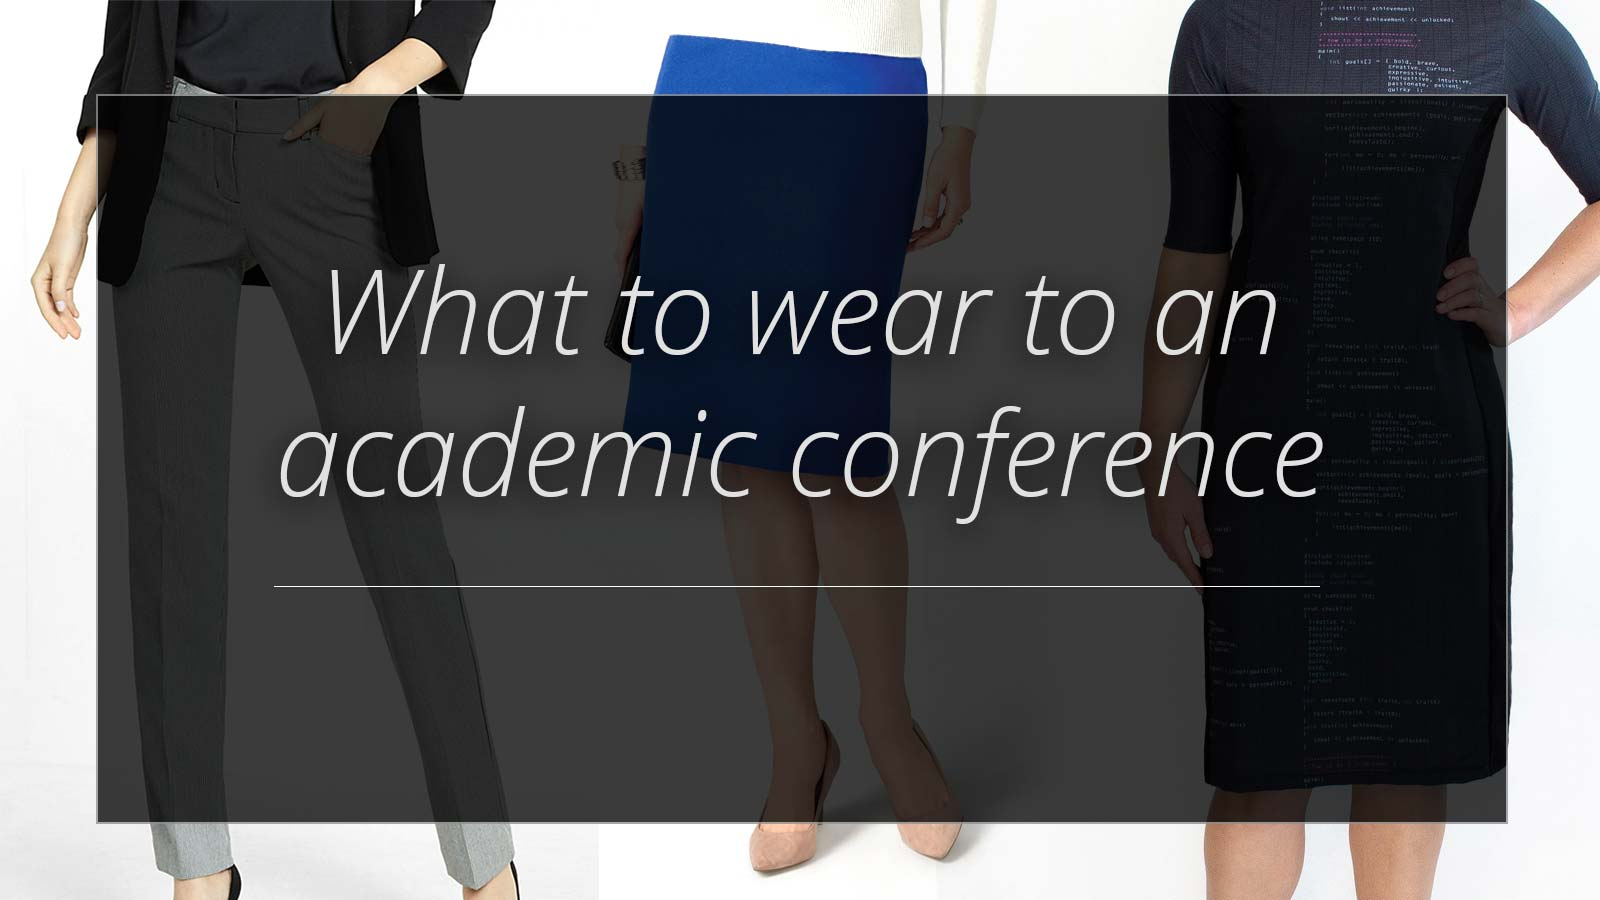 What to wear to an academic conference